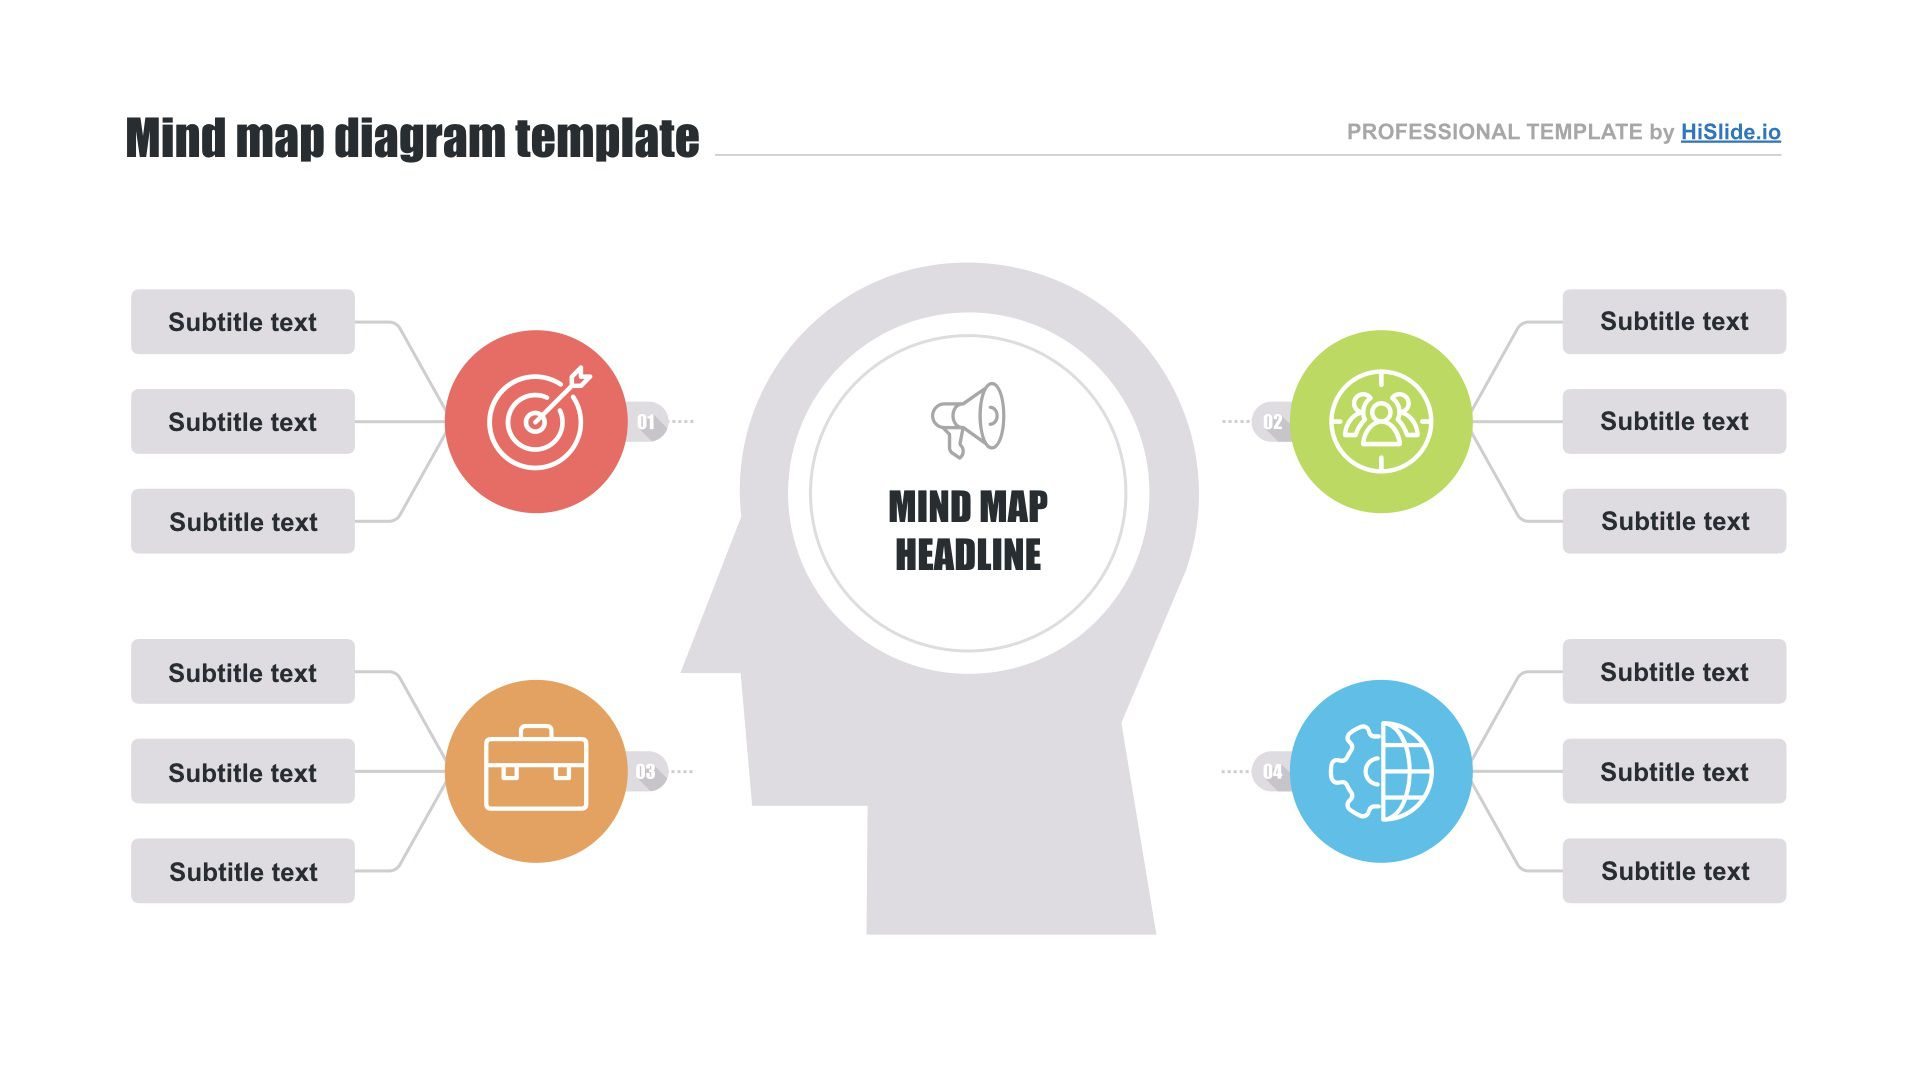 000 Astounding Free Editable Mind Map Template Image  Word PowerpointFull